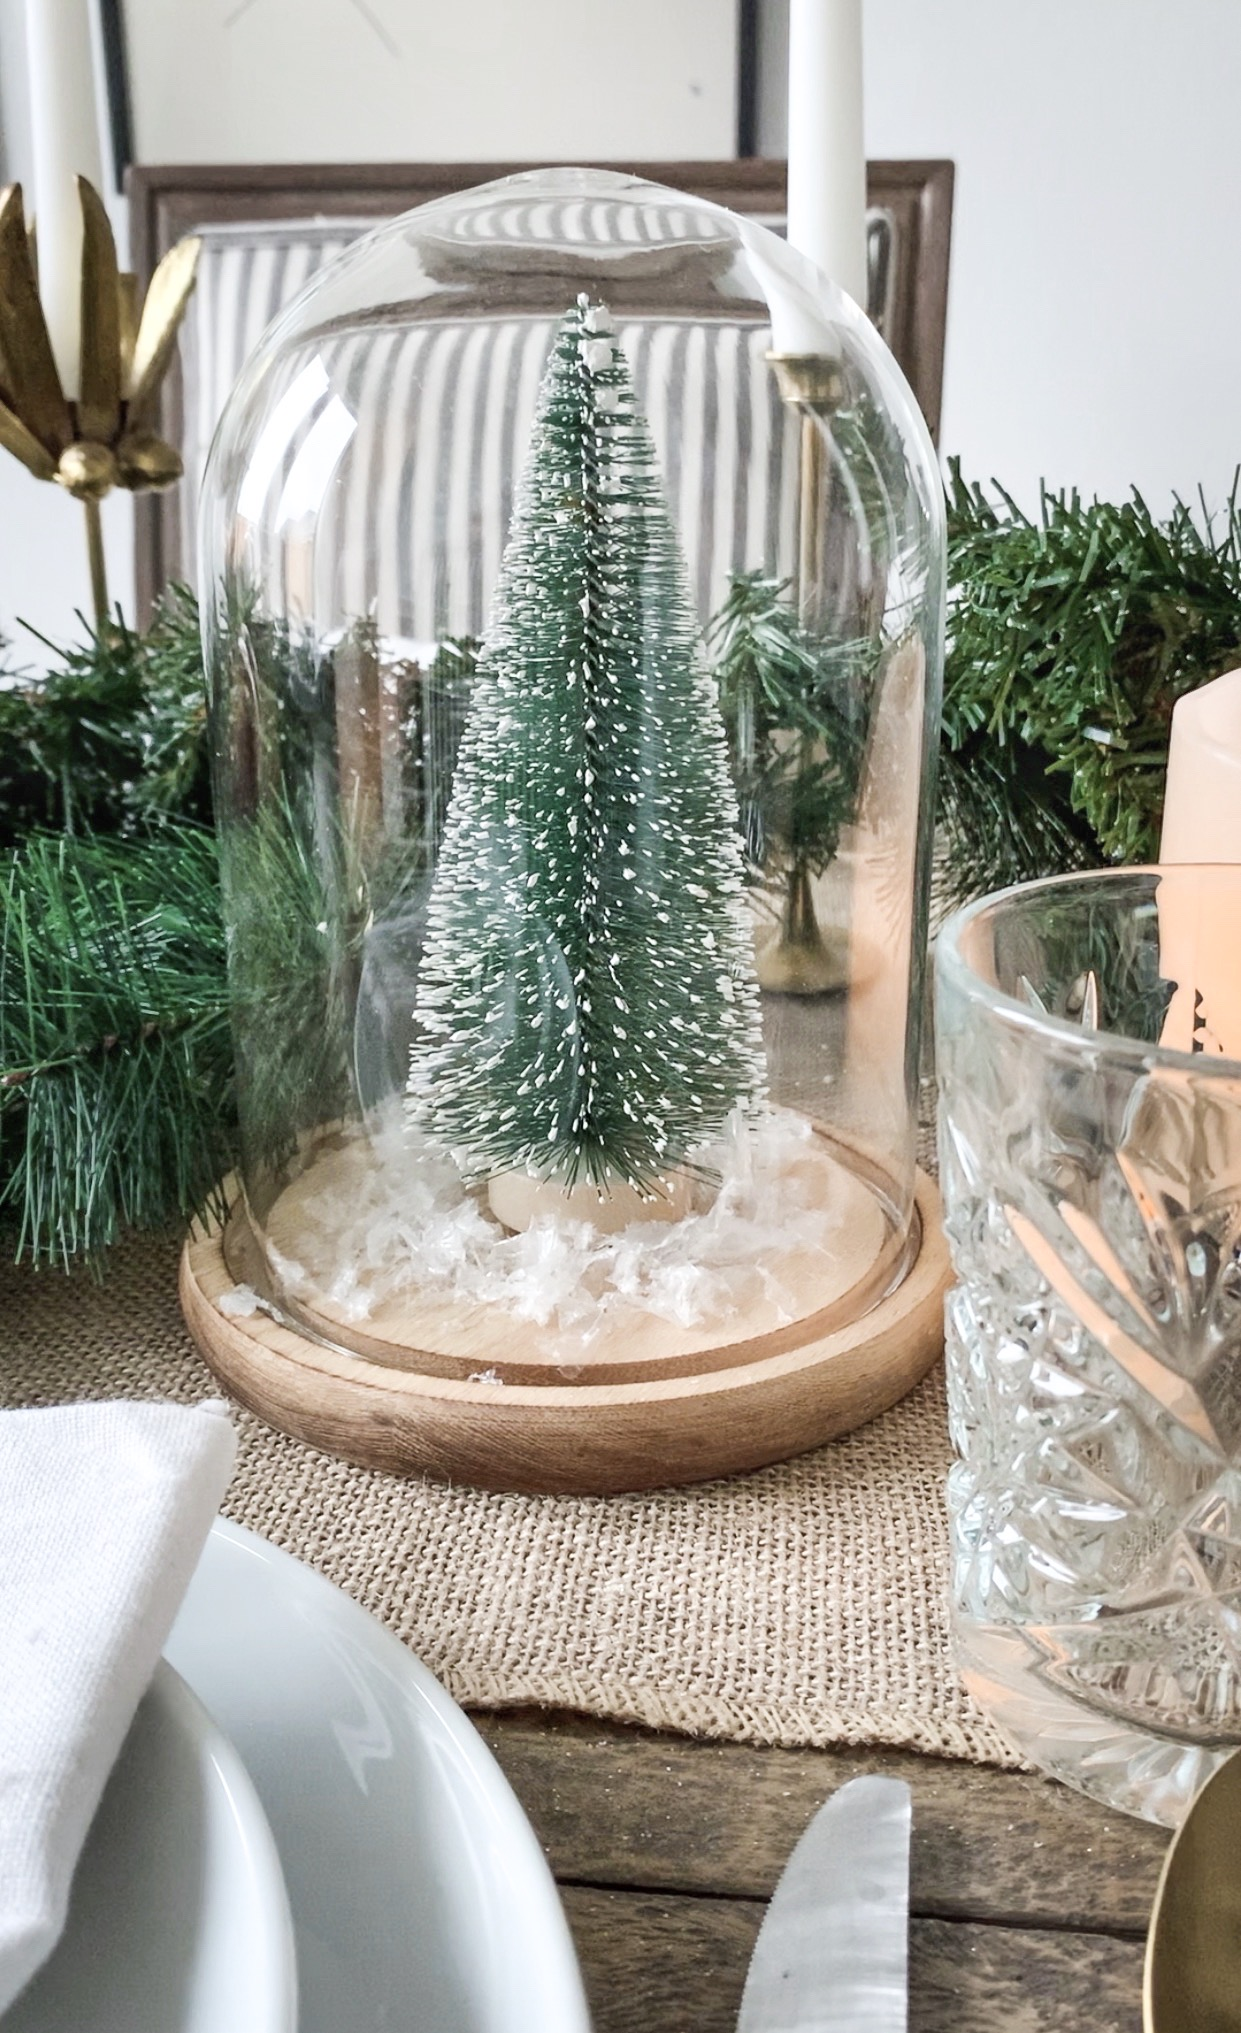 close up of cloche with a snow dusted mini Christmas tree